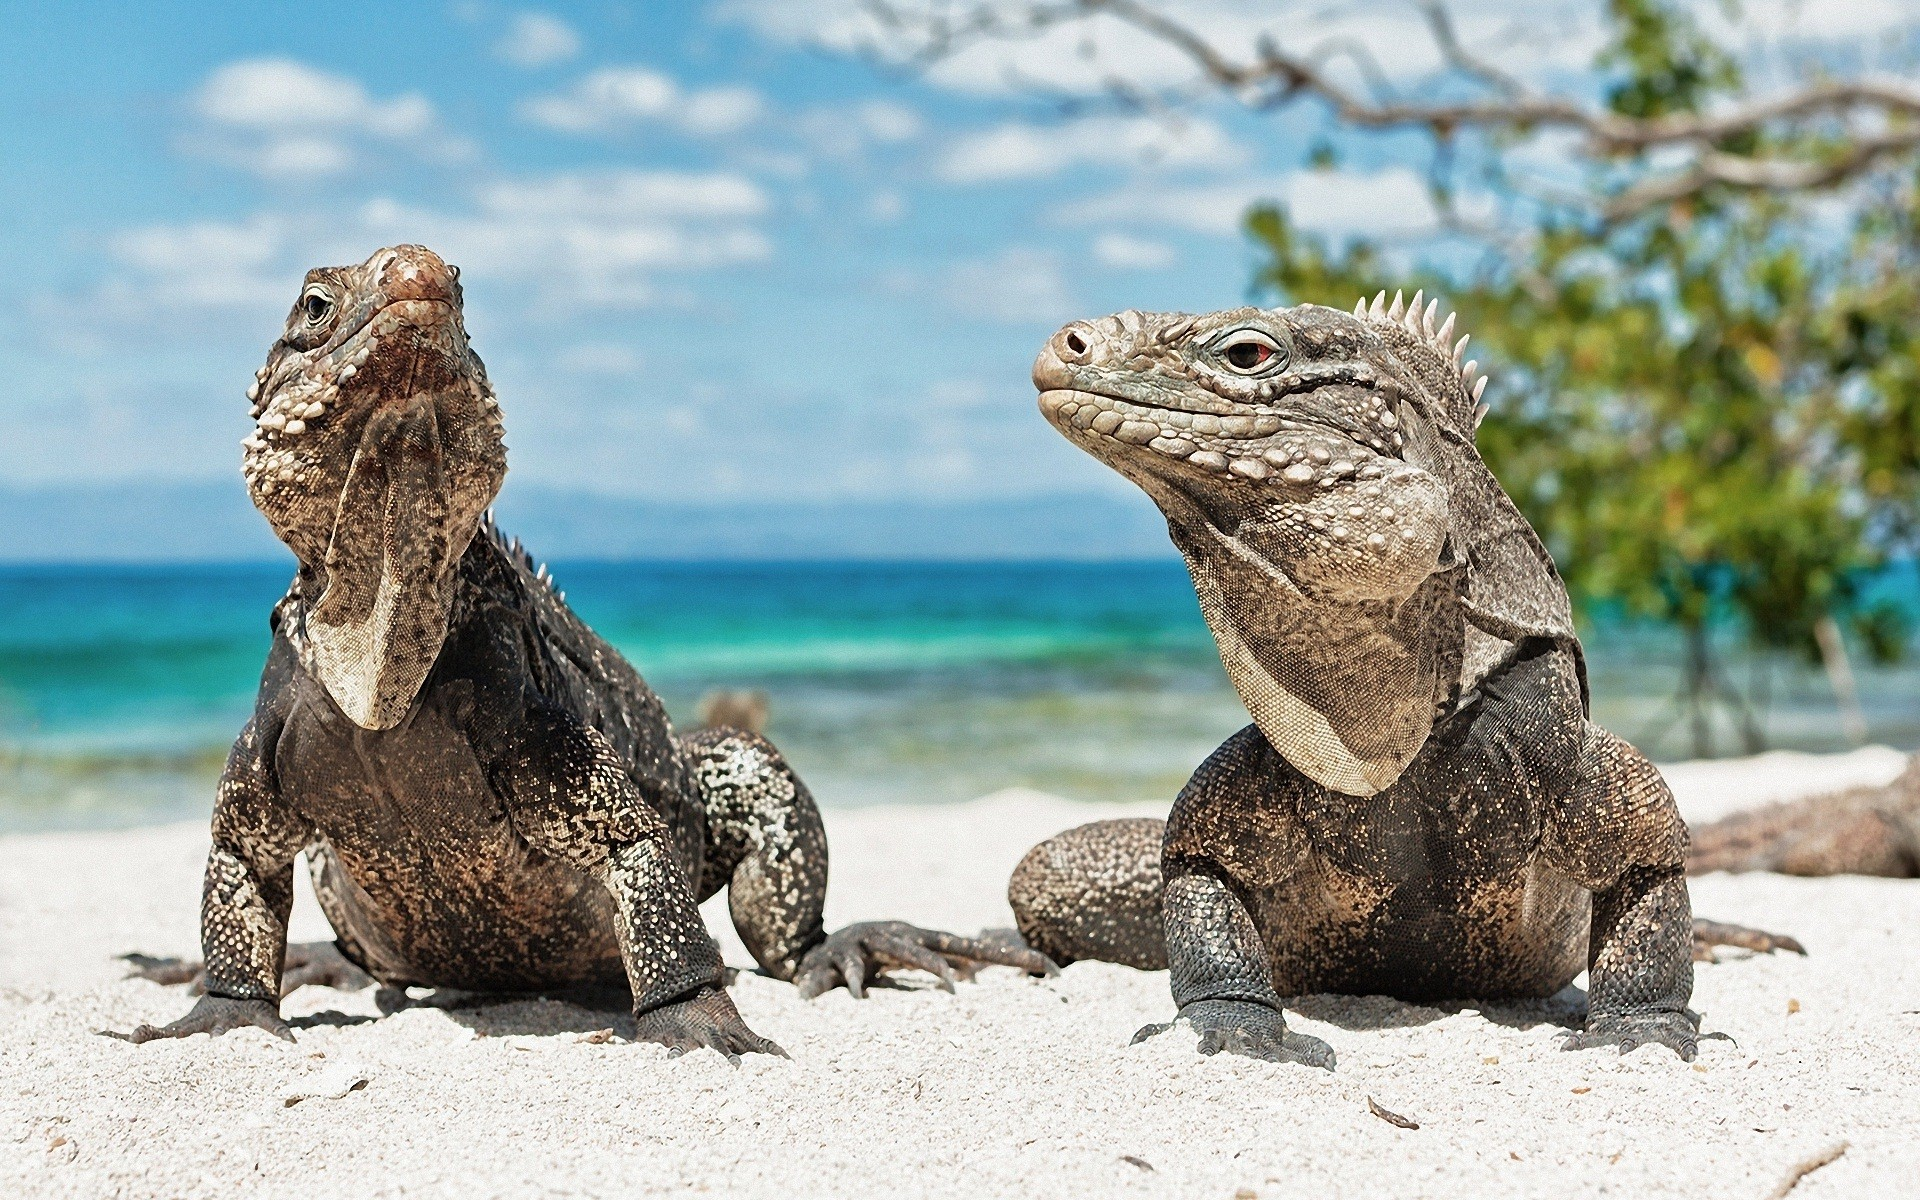 Iguana HD Wallpapers images High Definition   All HD Wallpapers 1920x1200